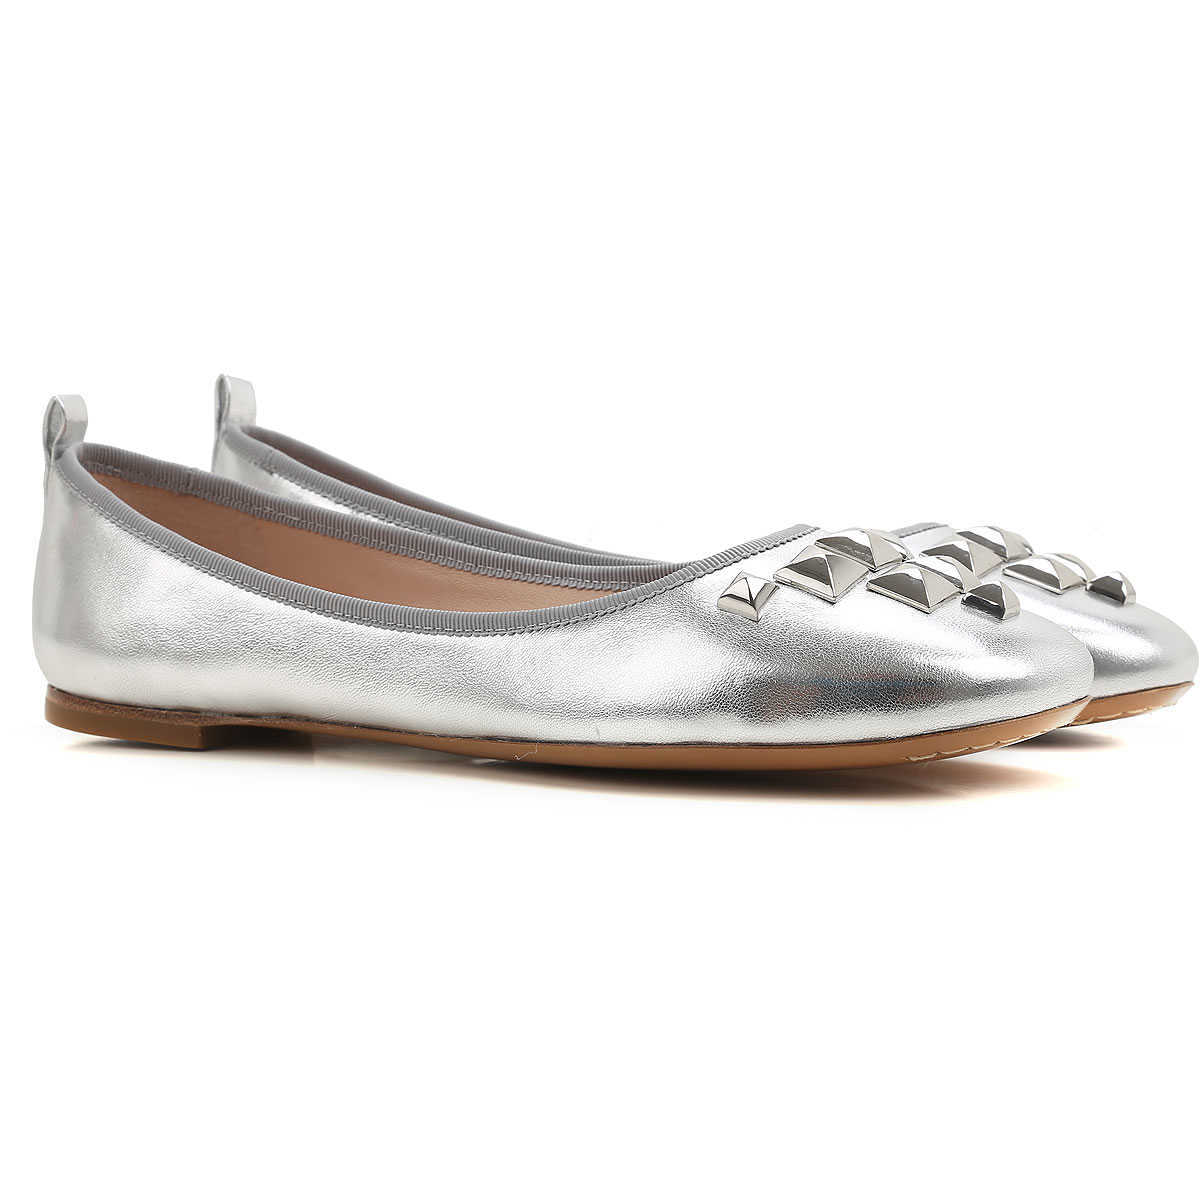 Marc Jacobs Ballet Flats Ballerina Shoes for Women On Sale Silver - GOOFASH